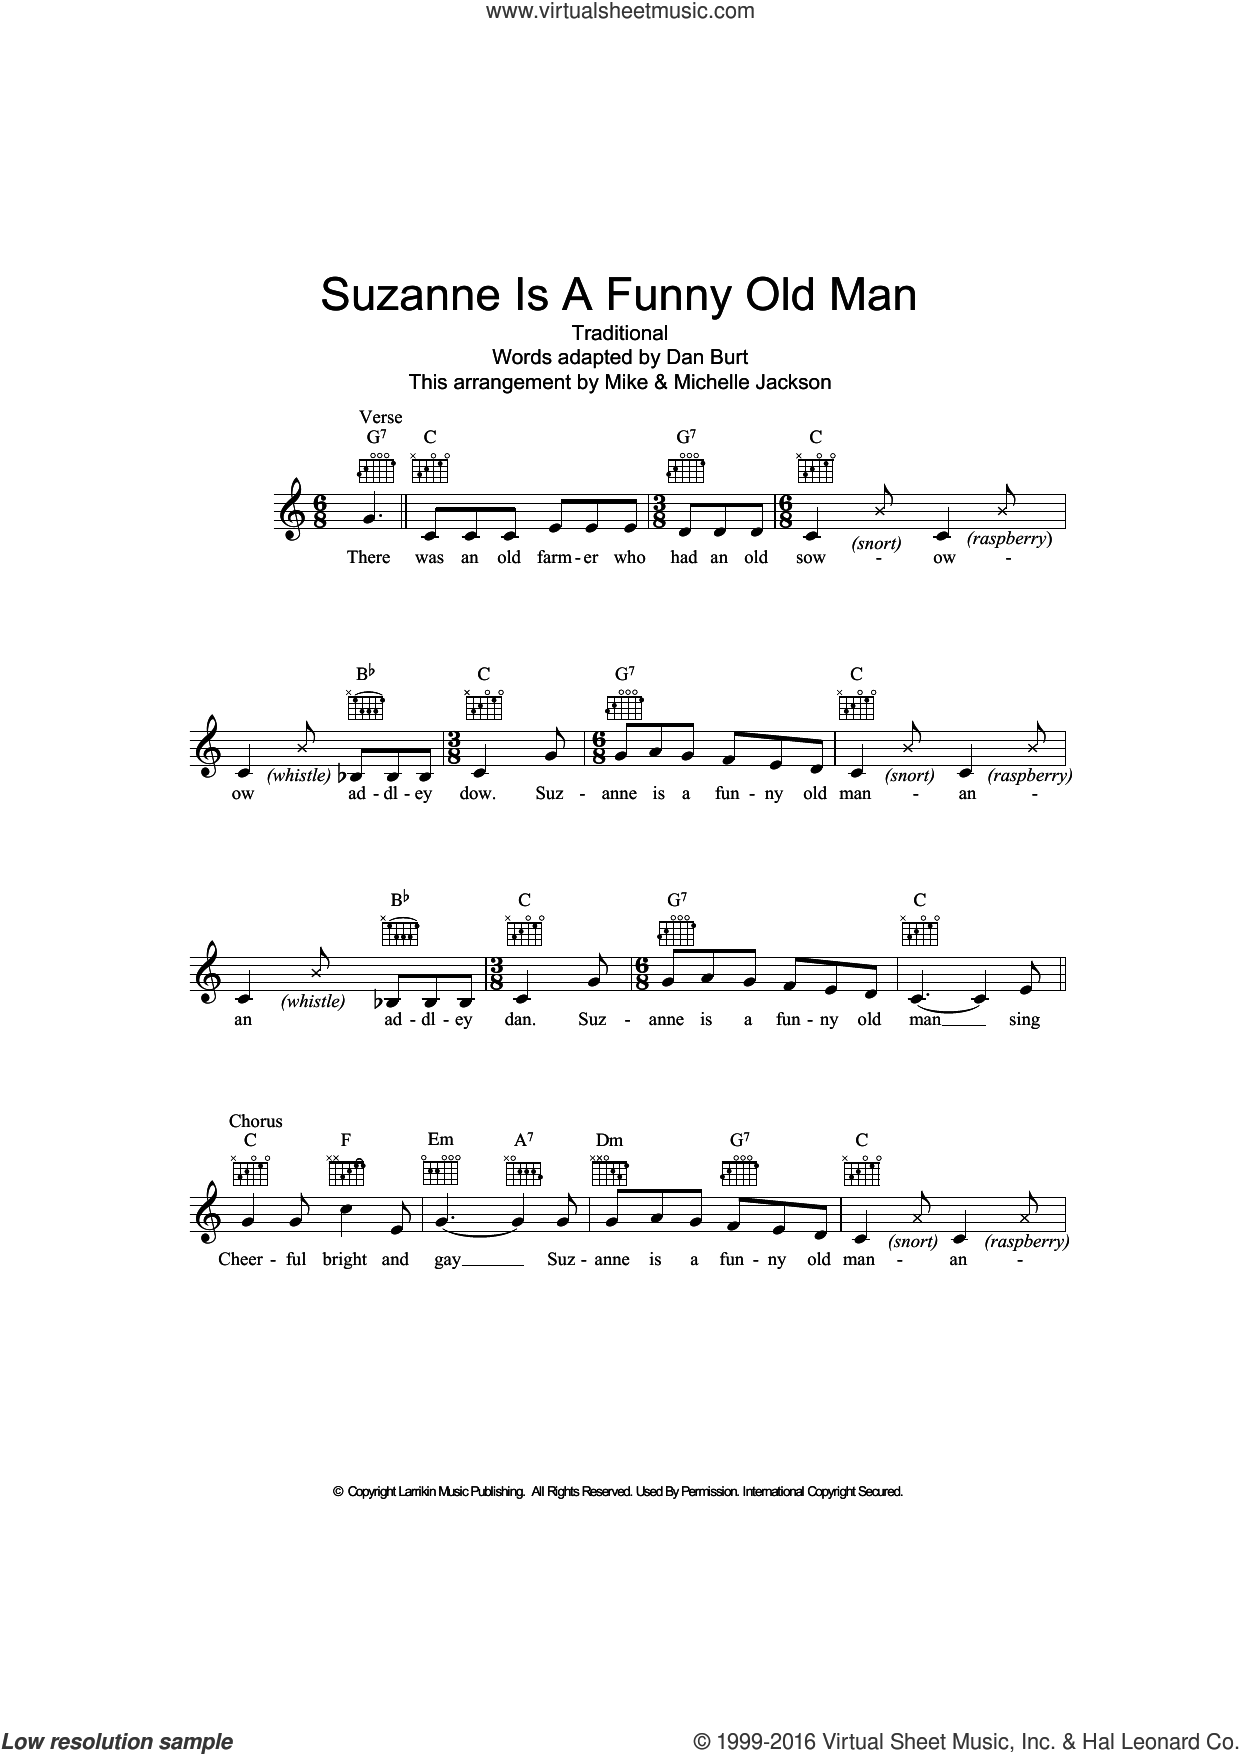 Suzanne Is A Funny Old Man sheet music for voice and other instruments (fake book)  and Dan Burt, intermediate. Score Image Preview.